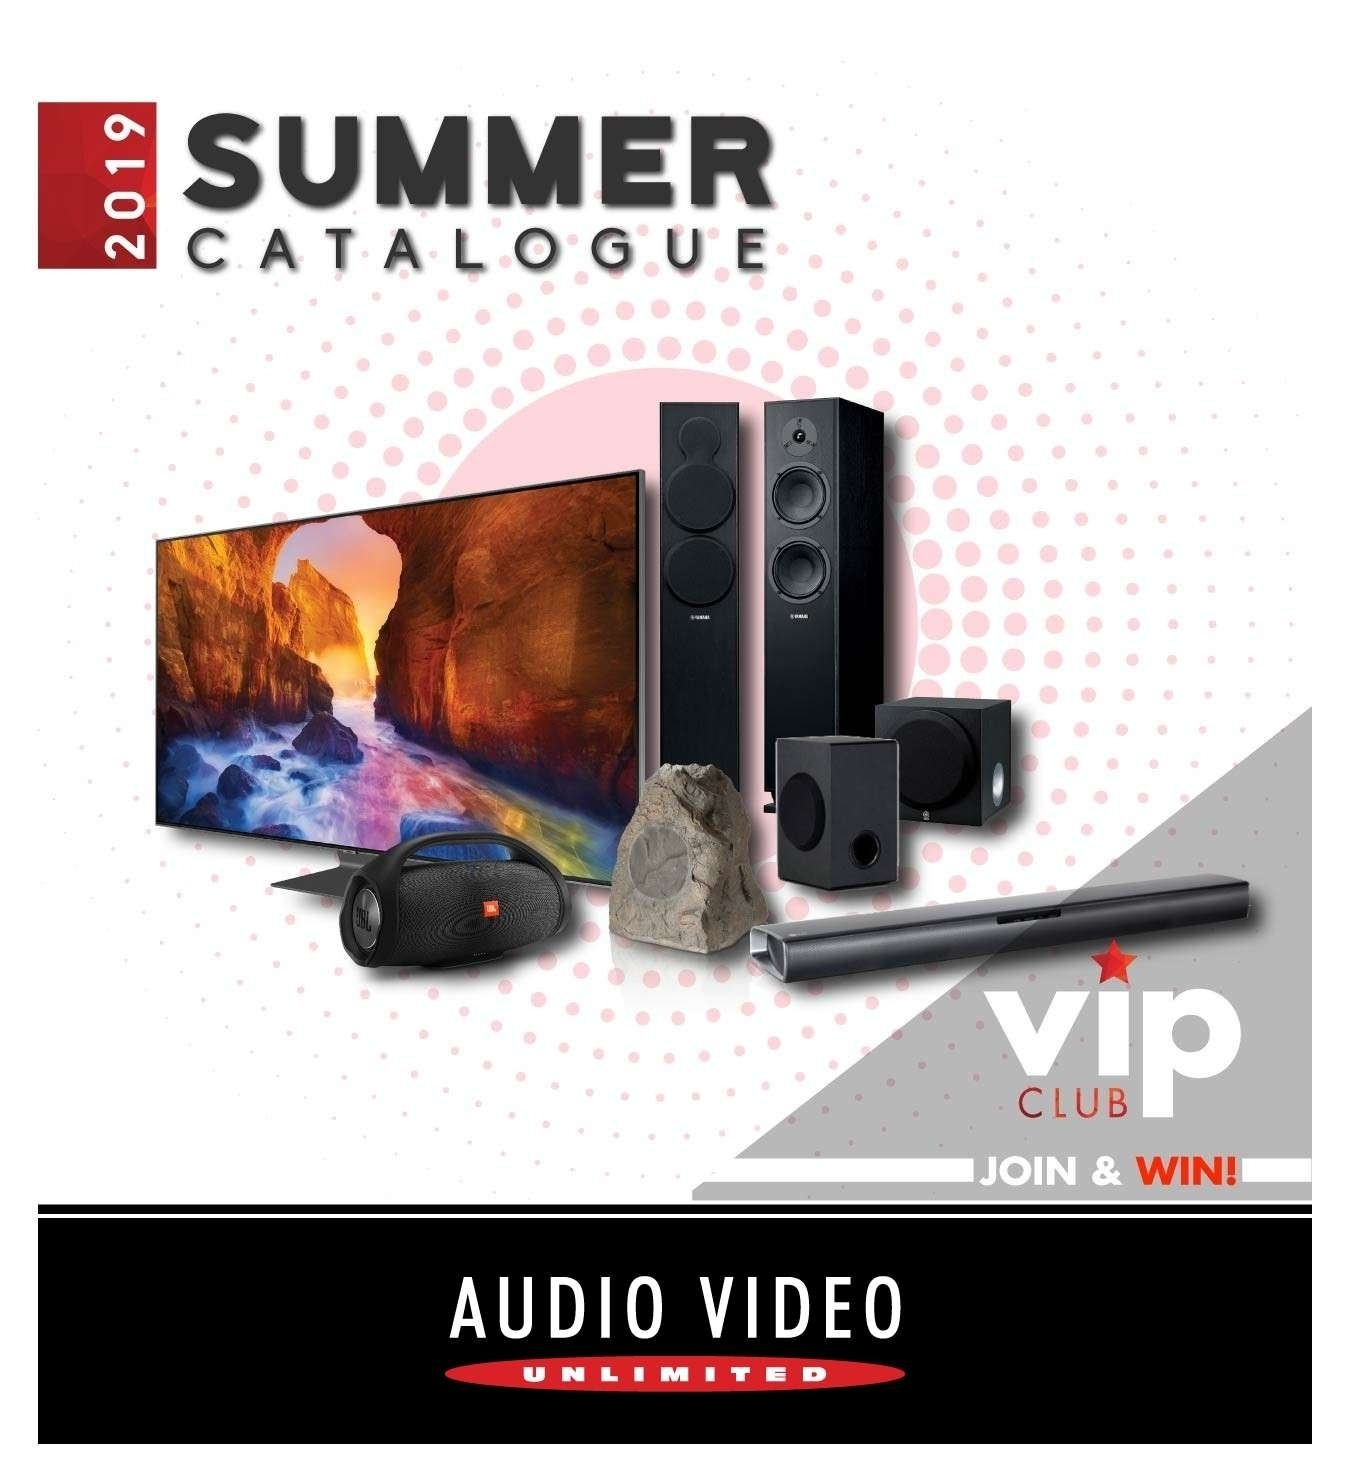 Product Catalog | Powered Up Audio Video